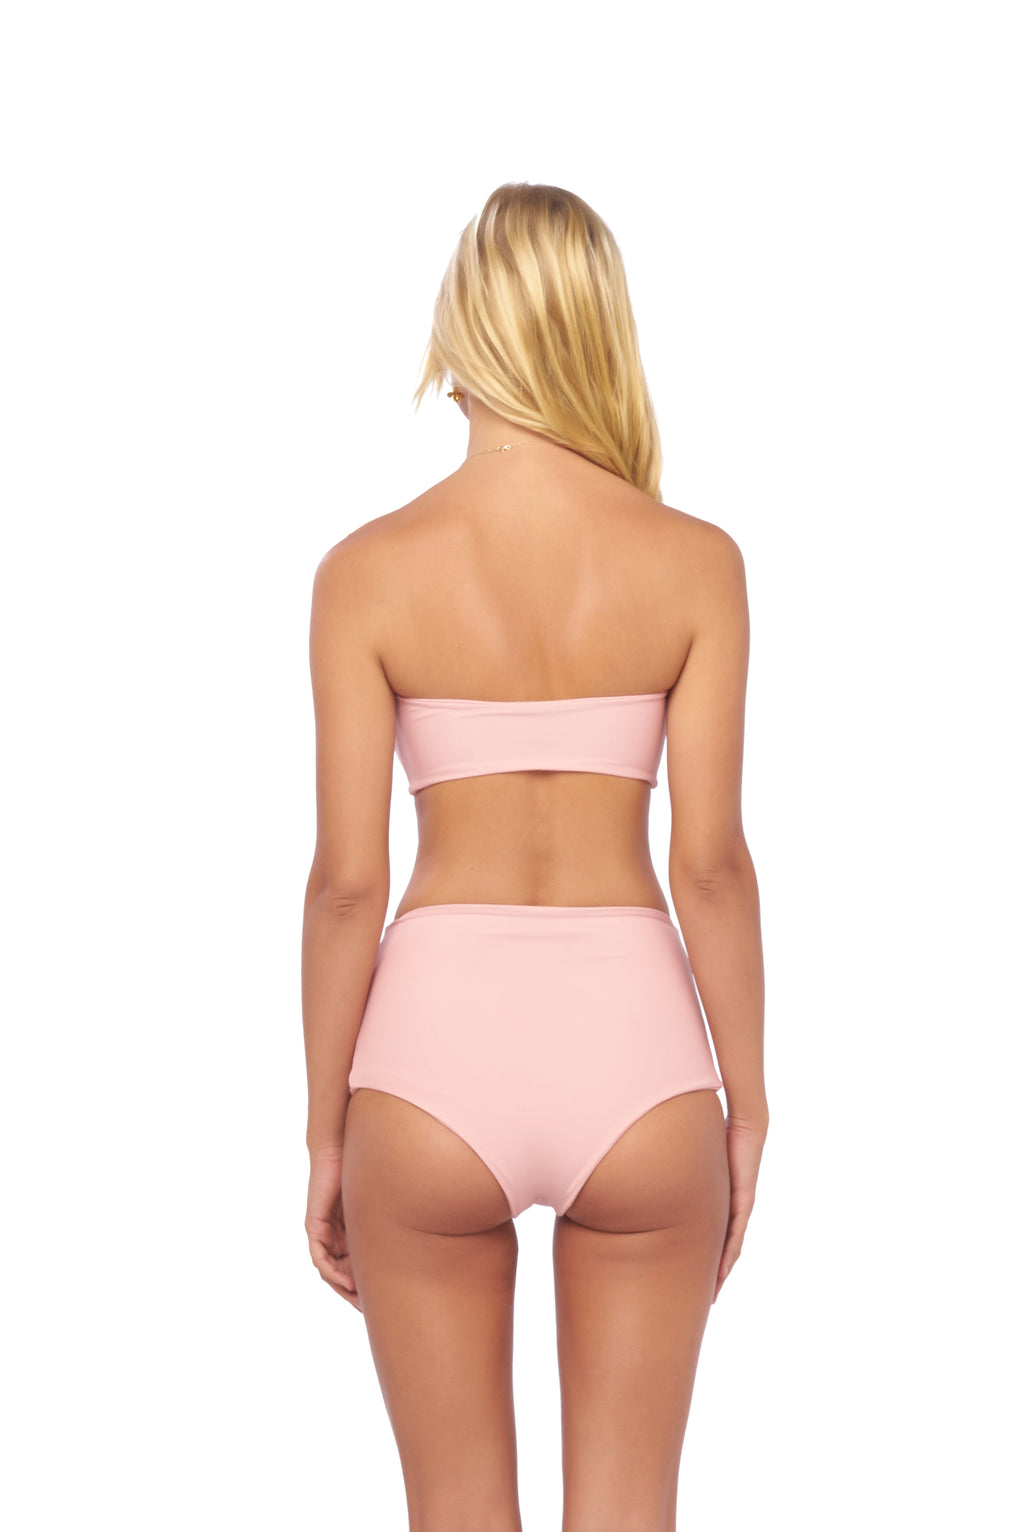 Storm Swimwear - Cannes - High Waist Bikini Bottom in Coral Cloud